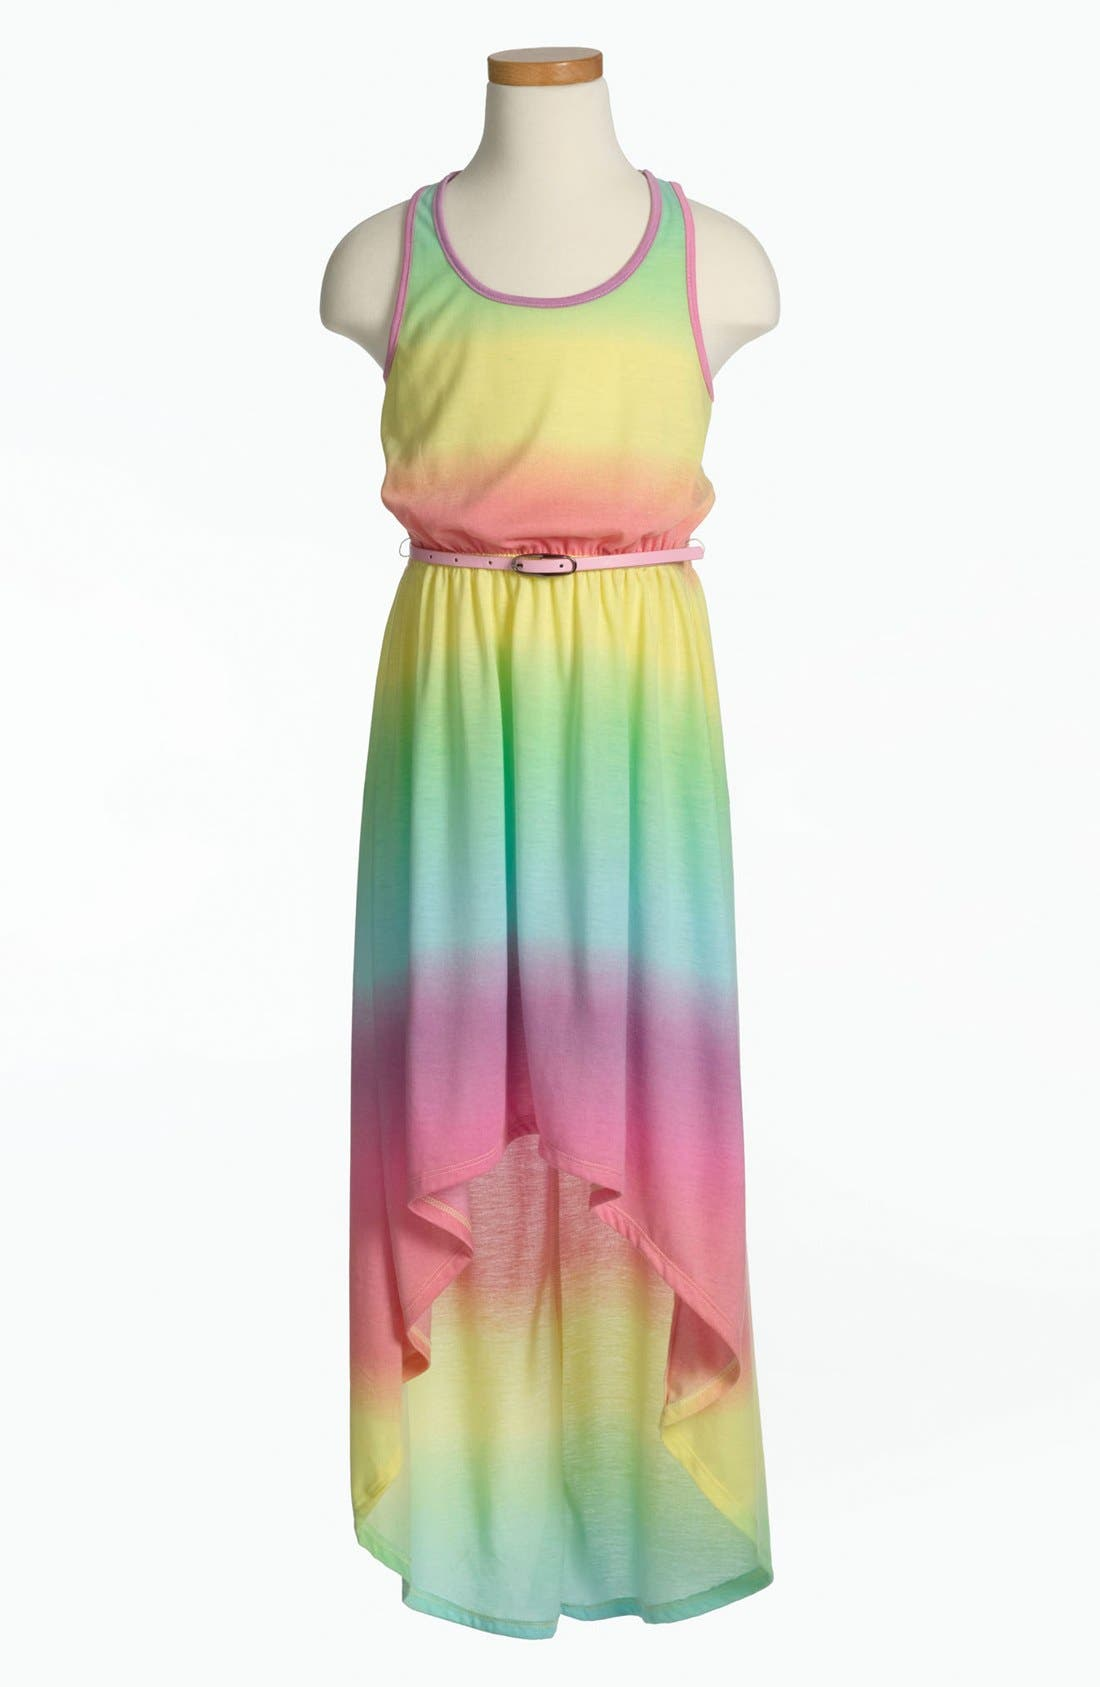 Alternate Image 1 Selected - Fire Tie Dye Dress (Little Girls & Big Girls)